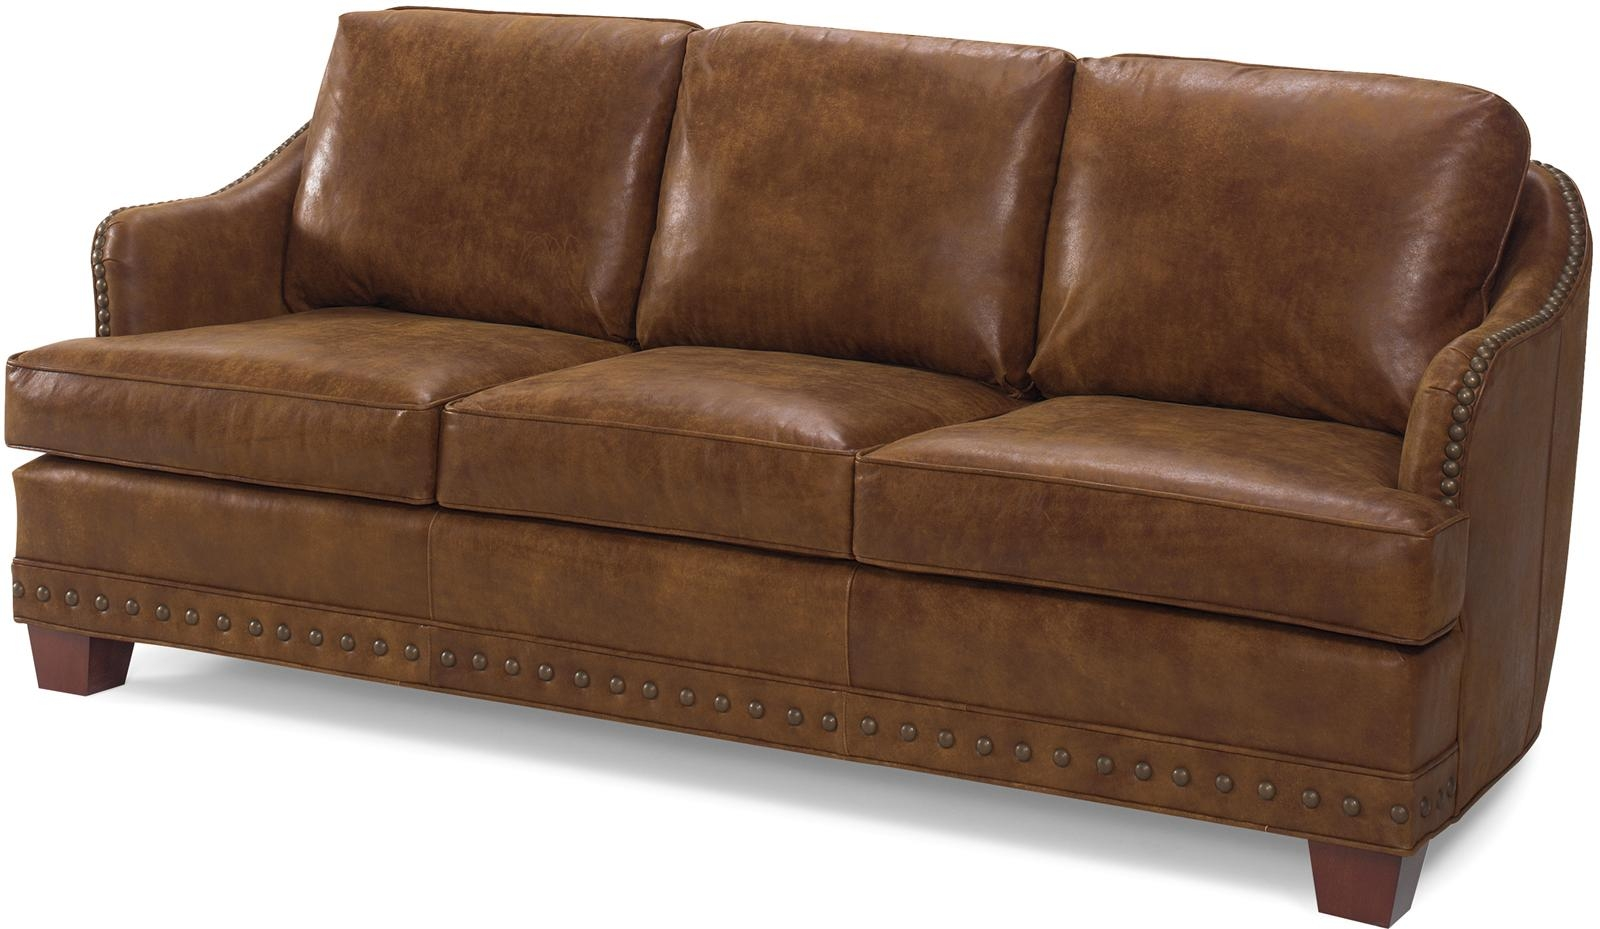 New leather sofa antique style brown top grain leather for Brown leather couch with studs